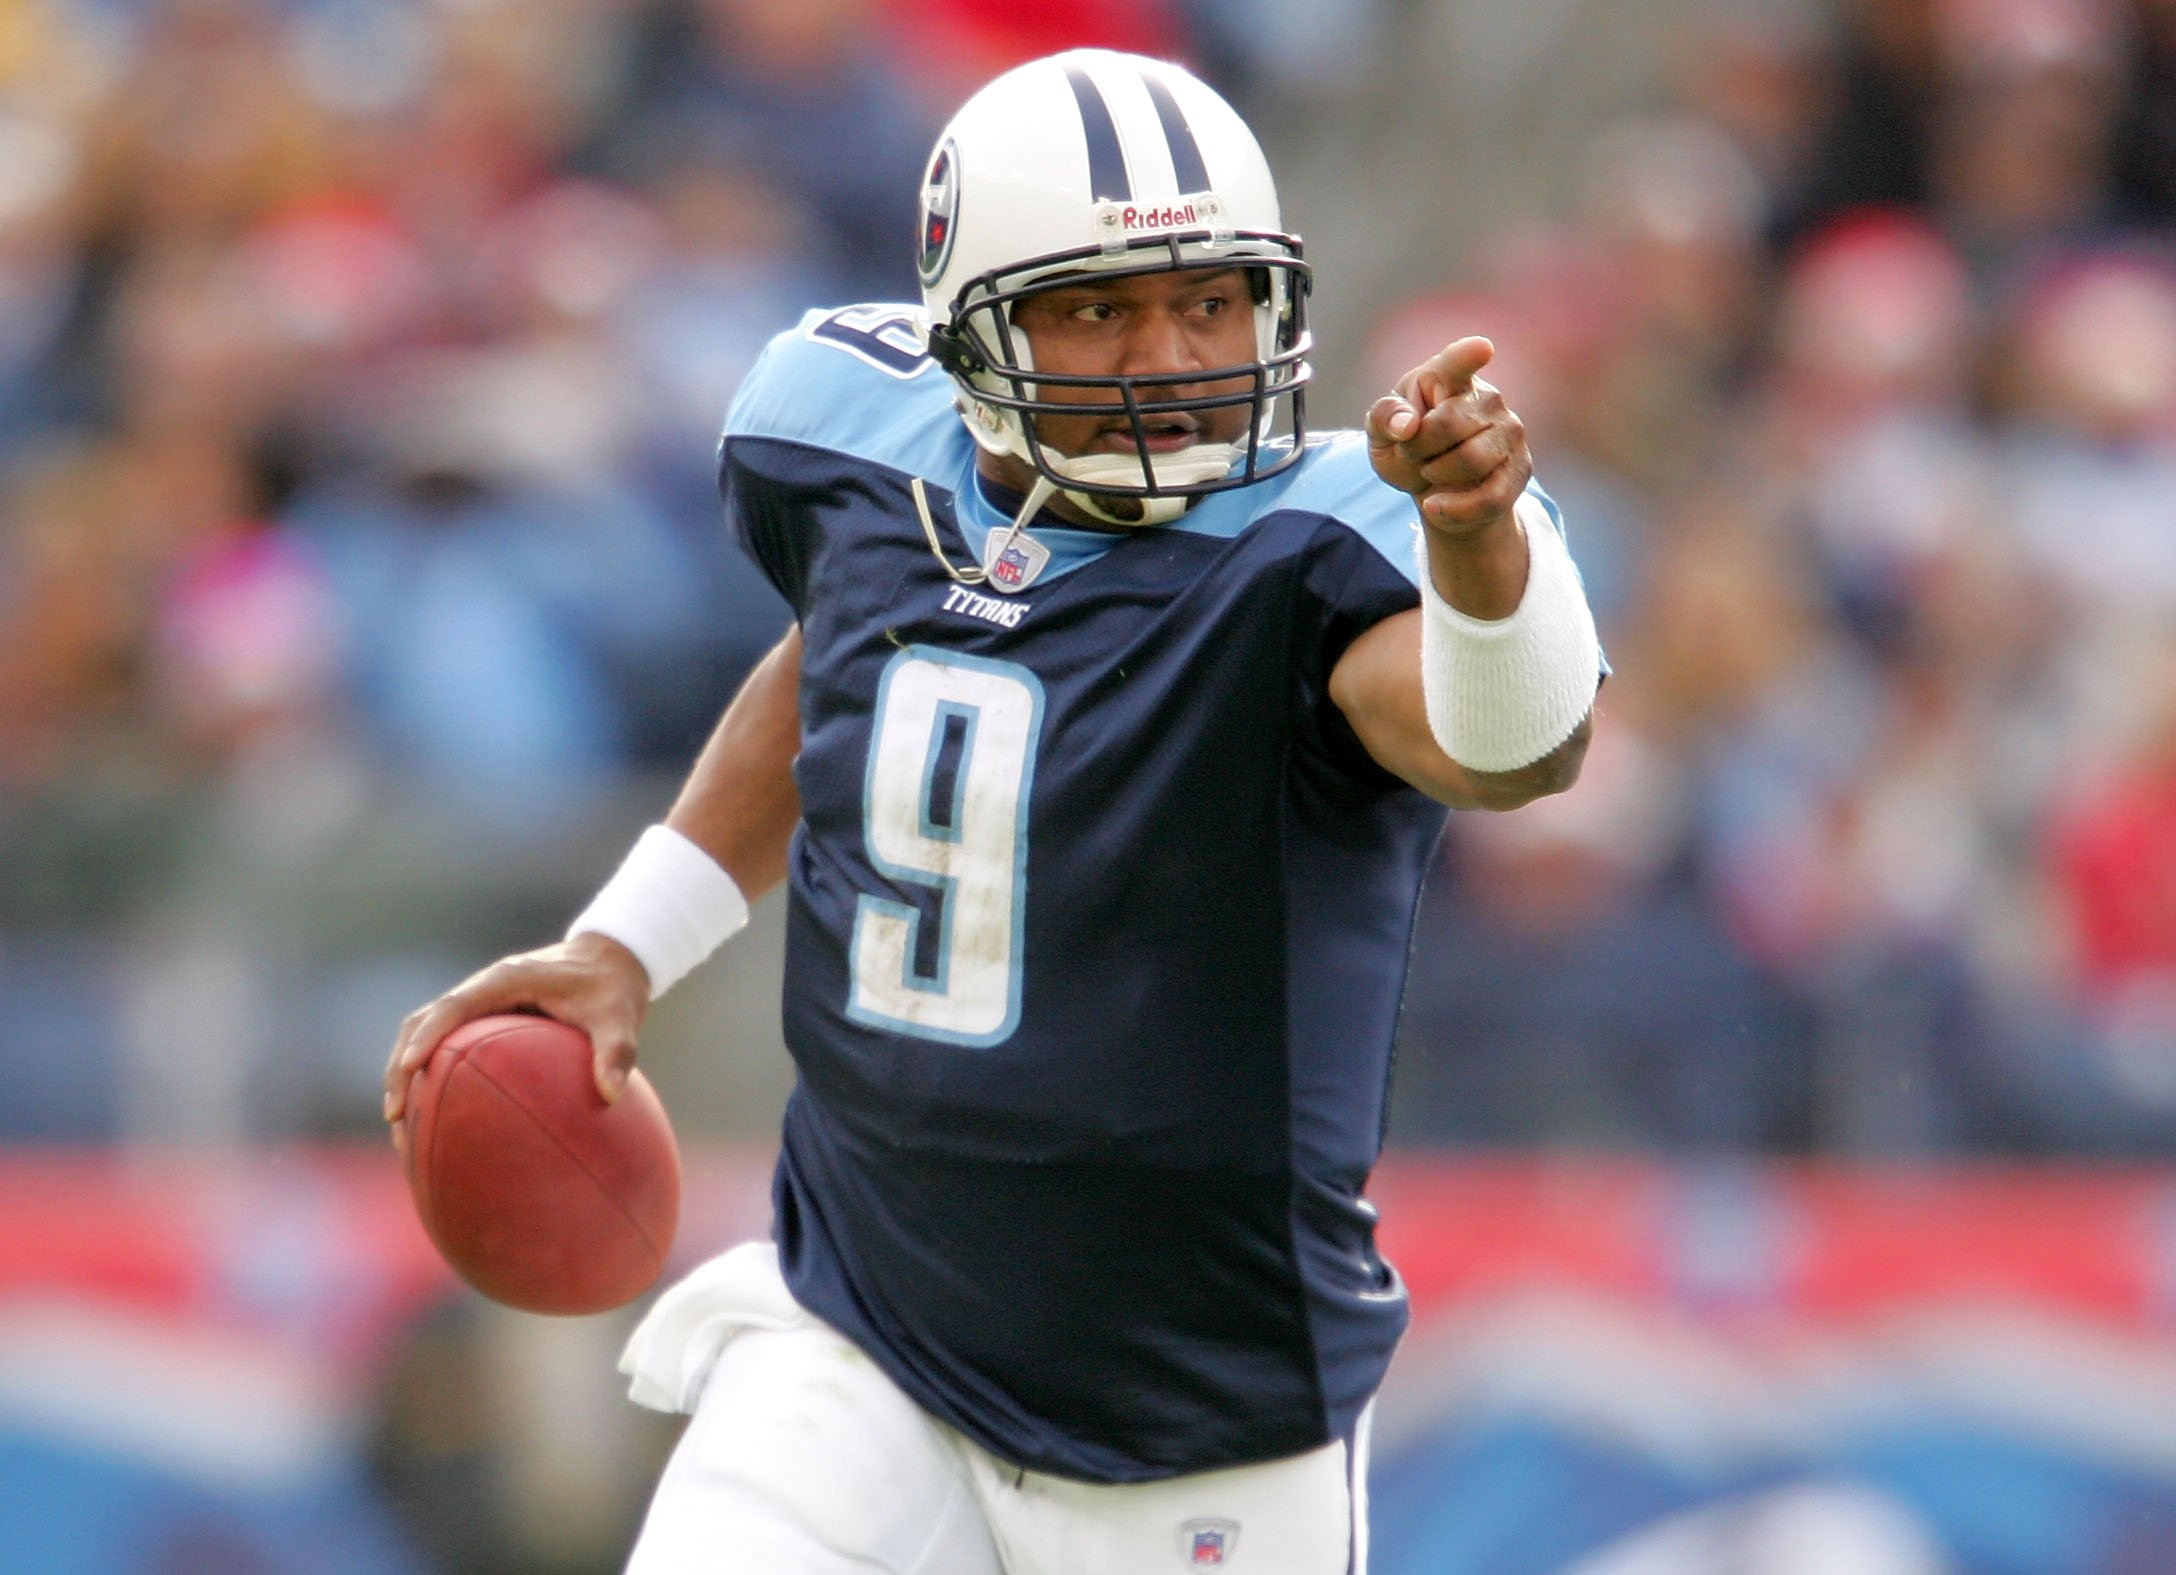 Steve McNair #9 of the Tennessee Titans plays against the Tennessee Titans December 18, 2005 at The Coliseum in Nashville, Tennessee. | Photo: GettyImages